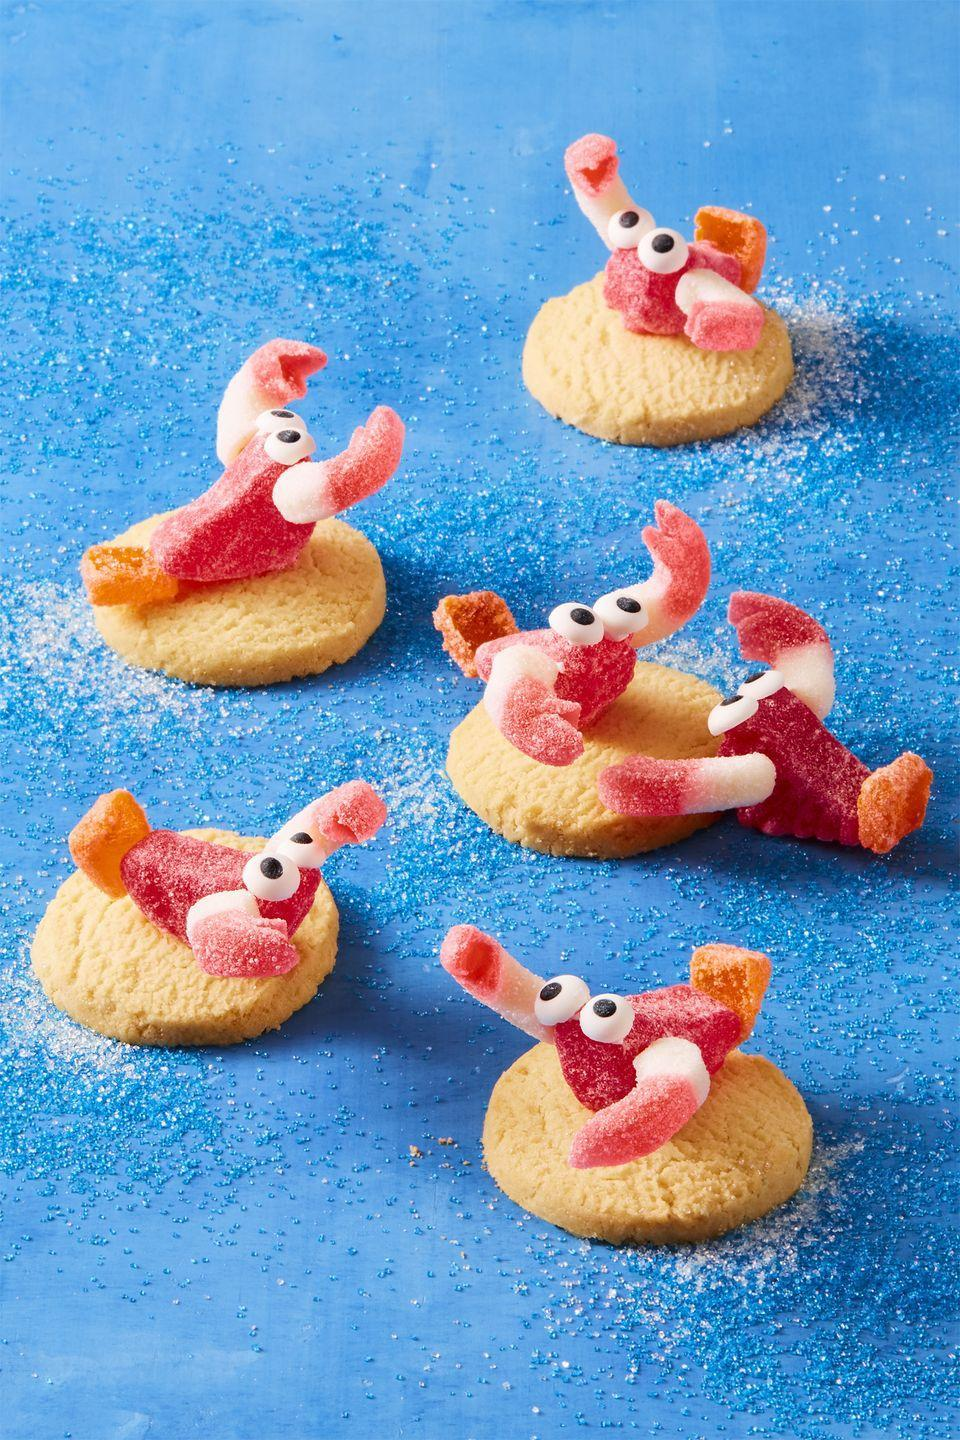 """<p>So candy and cookies might not be the healthiest of after-school snacks, but these cute crustacean cookies <em>are</em> a super-fun project <em>and </em>treat in one.</p><p><a href=""""https://www.womansday.com/food-recipes/food-drinks/recipes/a59000/gummy-lobsters-recipe/"""" rel=""""nofollow noopener"""" target=""""_blank"""" data-ylk=""""slk:Get the Gummy Lobsters recipe."""" class=""""link rapid-noclick-resp""""><em>Get the Gummy Lobsters recipe.</em></a></p>"""